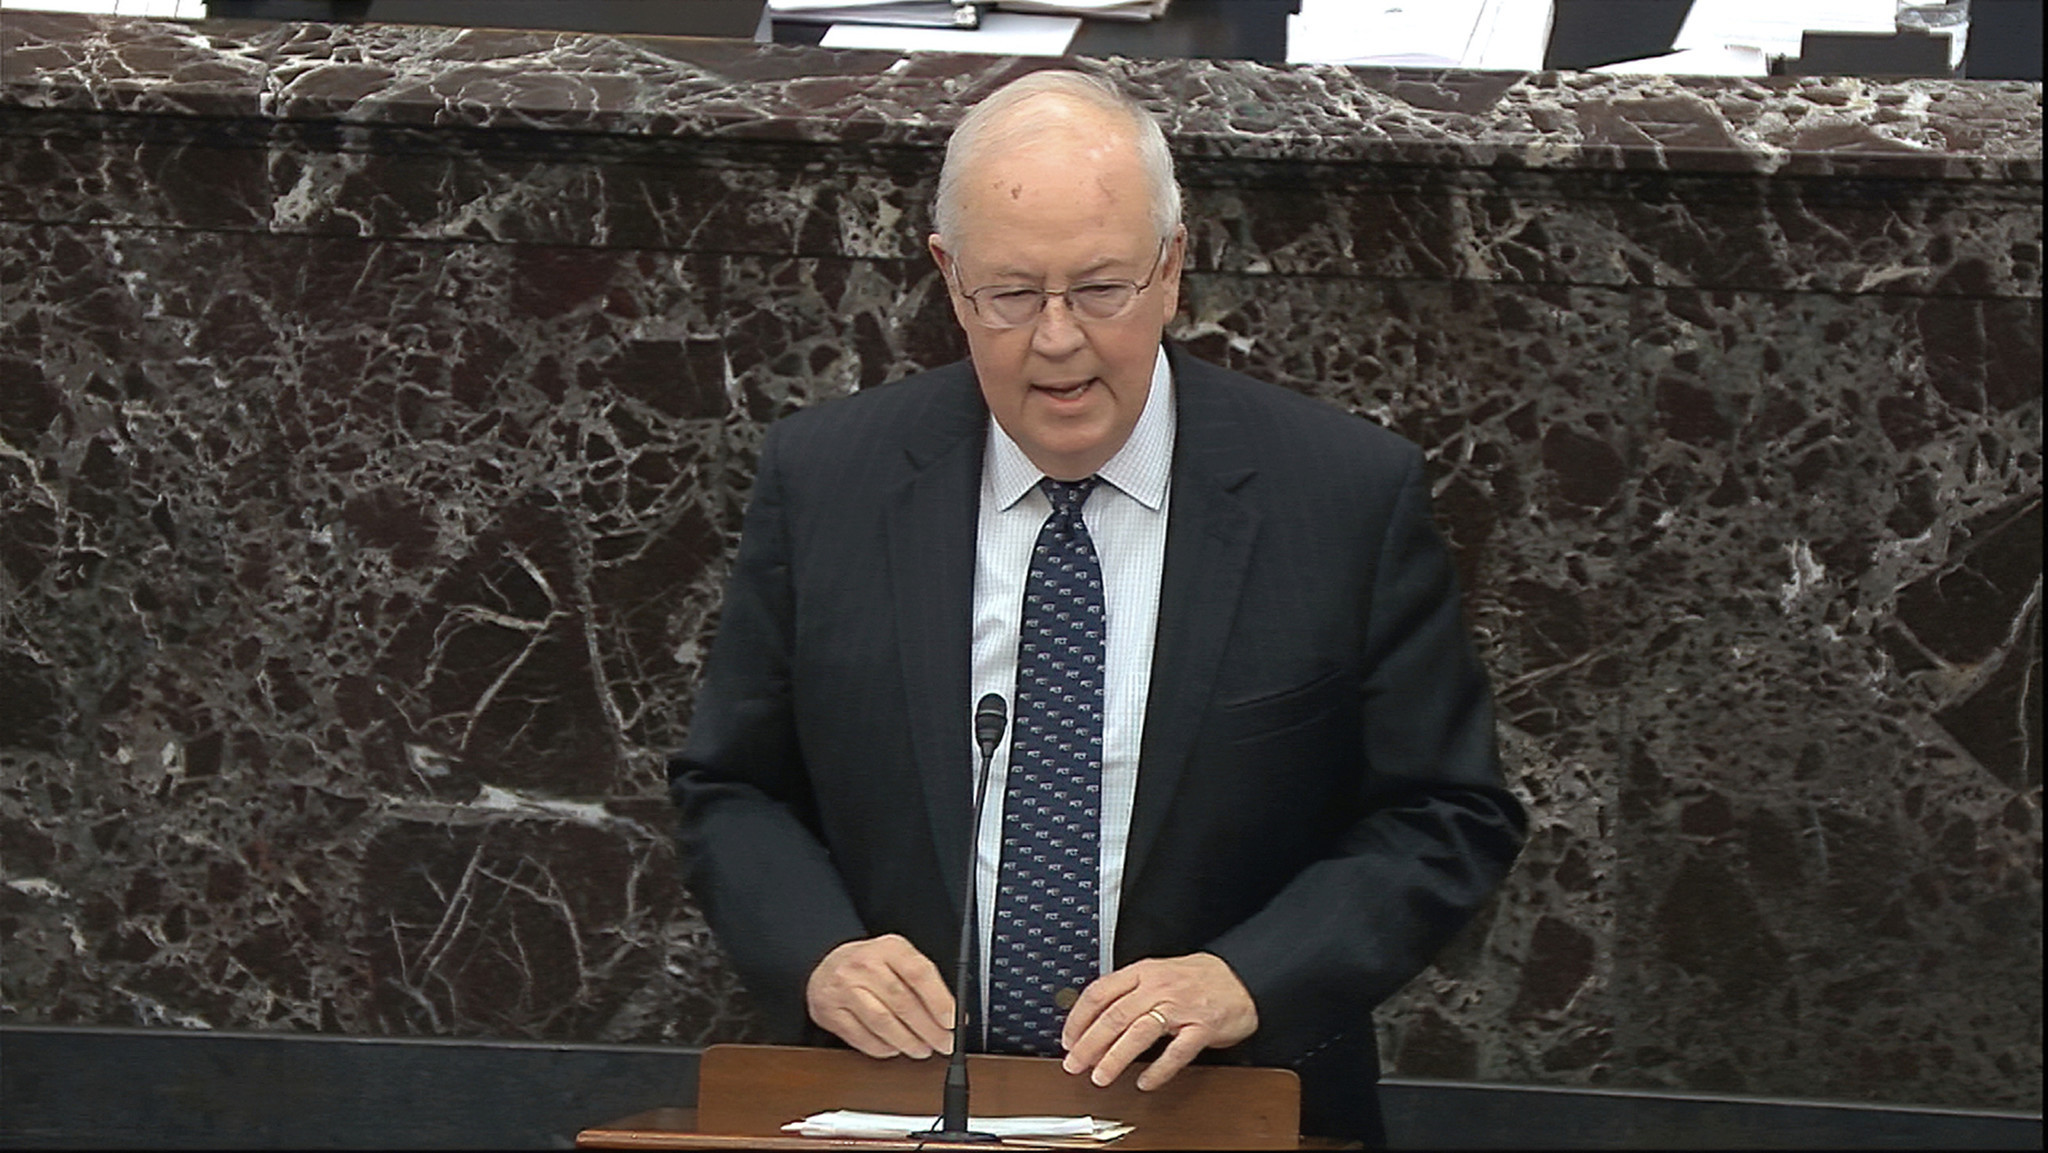 No, he didn't: Hypocrite Kenneth Starr invokes Martin Luther King in defense of President Trump